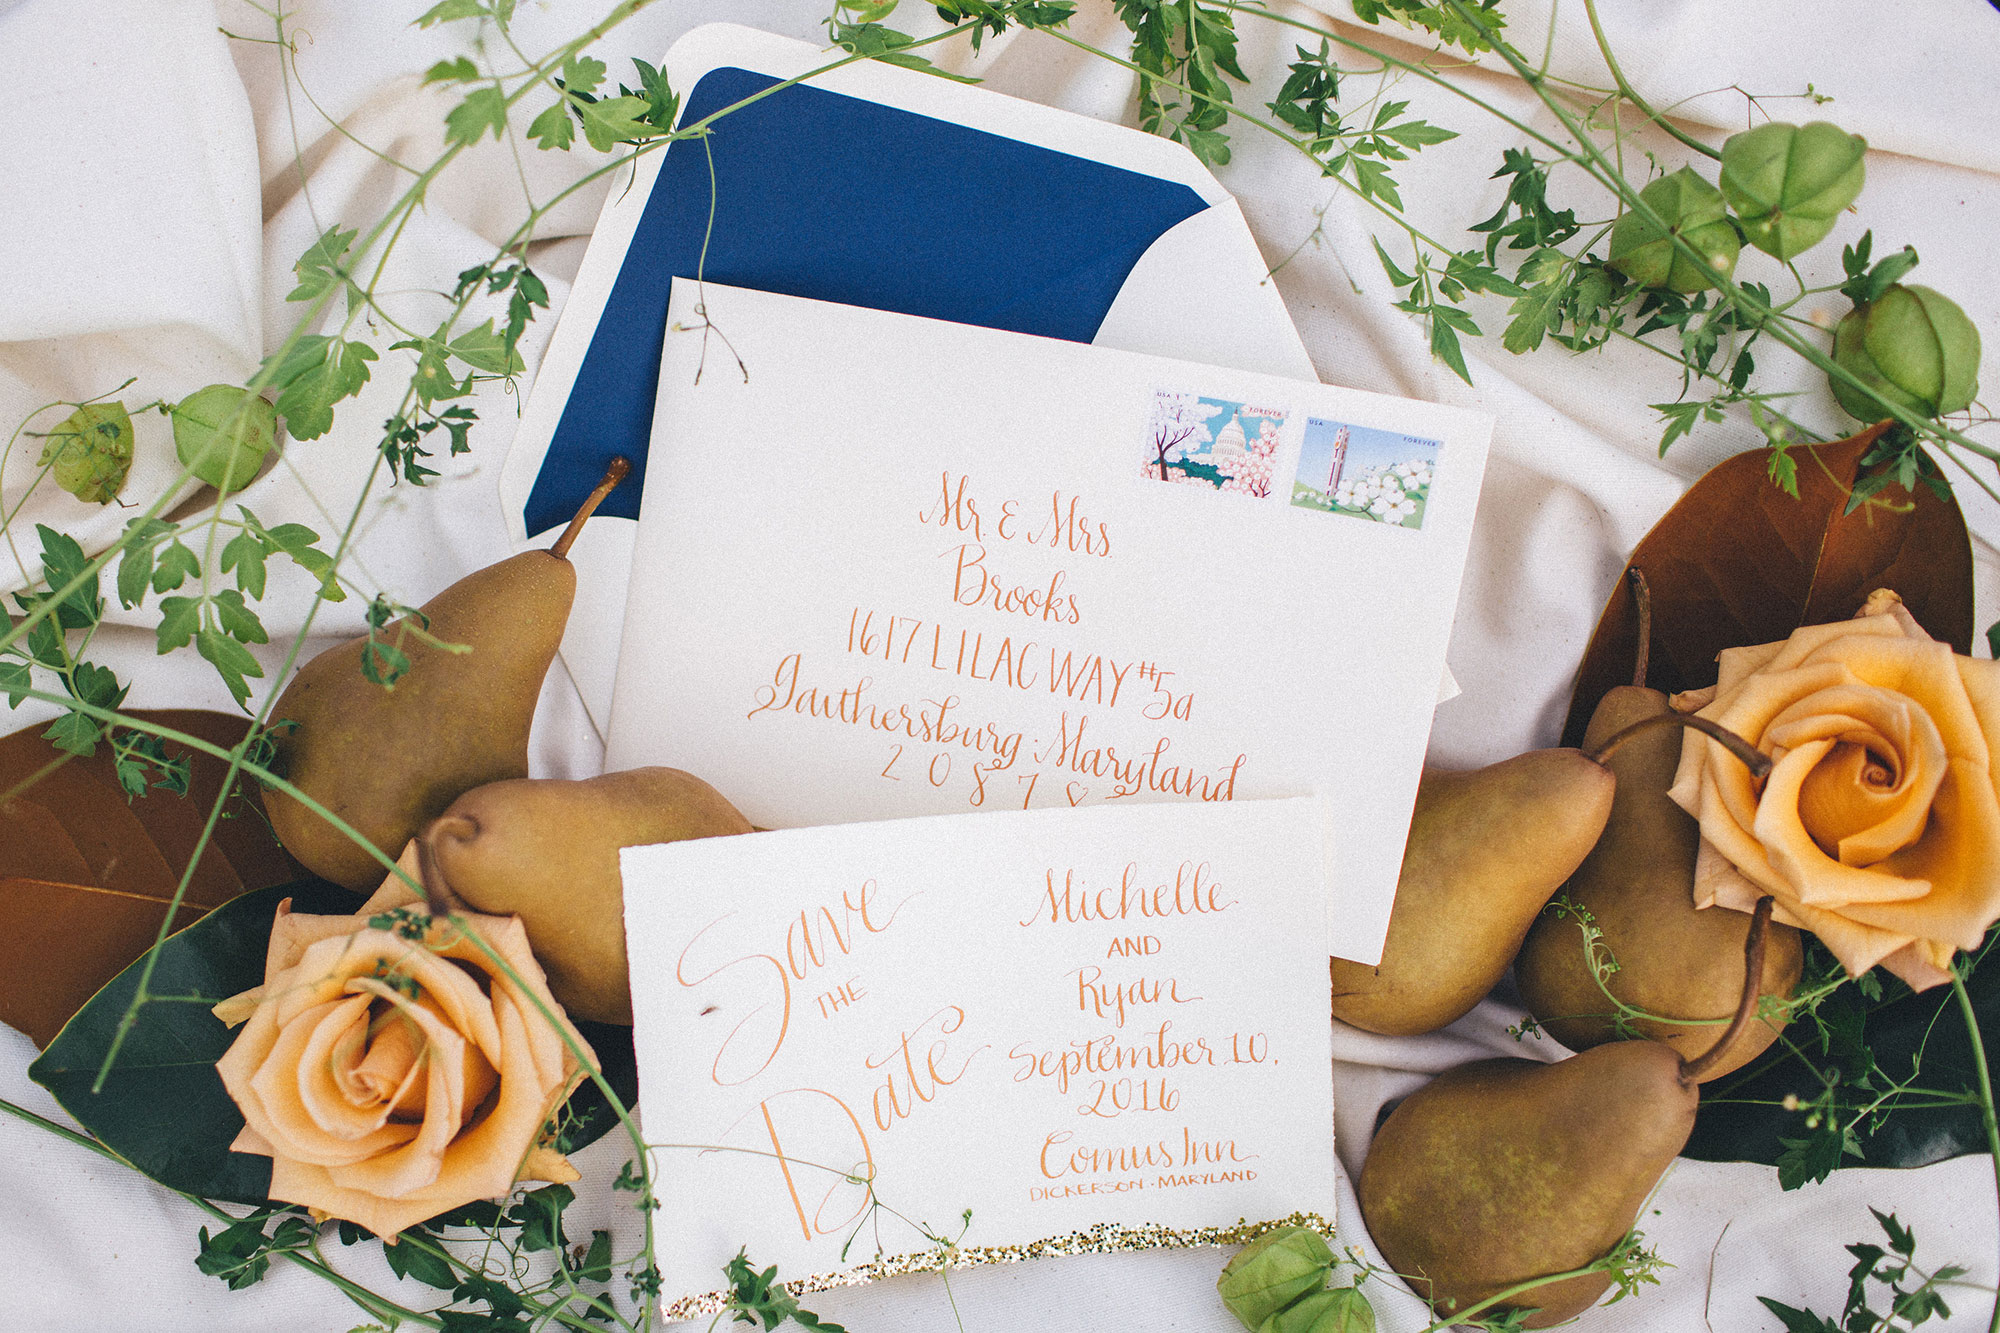 Autumnal Elegance Styled Shoot : The Comus Inn Marina Mauletkali Photography